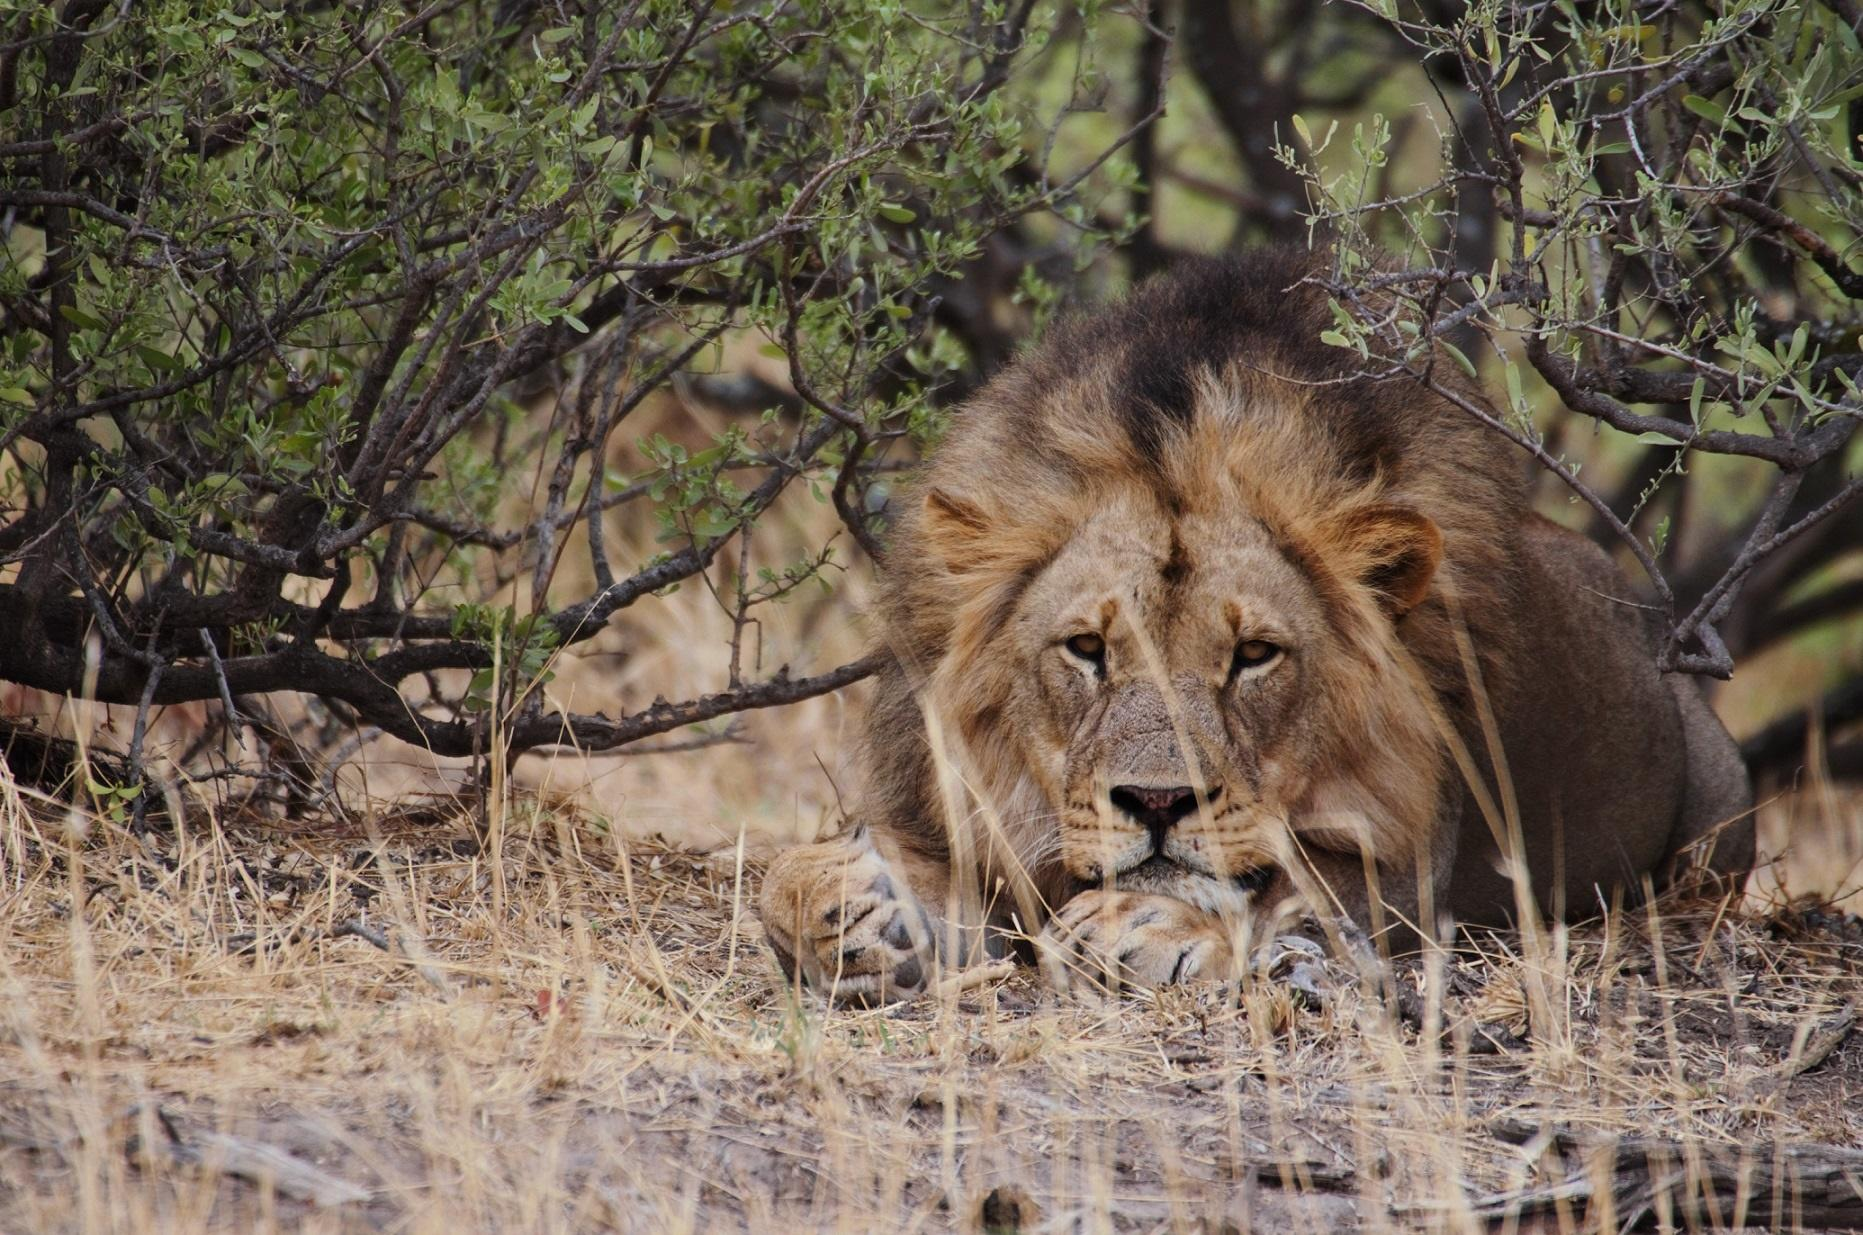 Lion spotting during a game drive